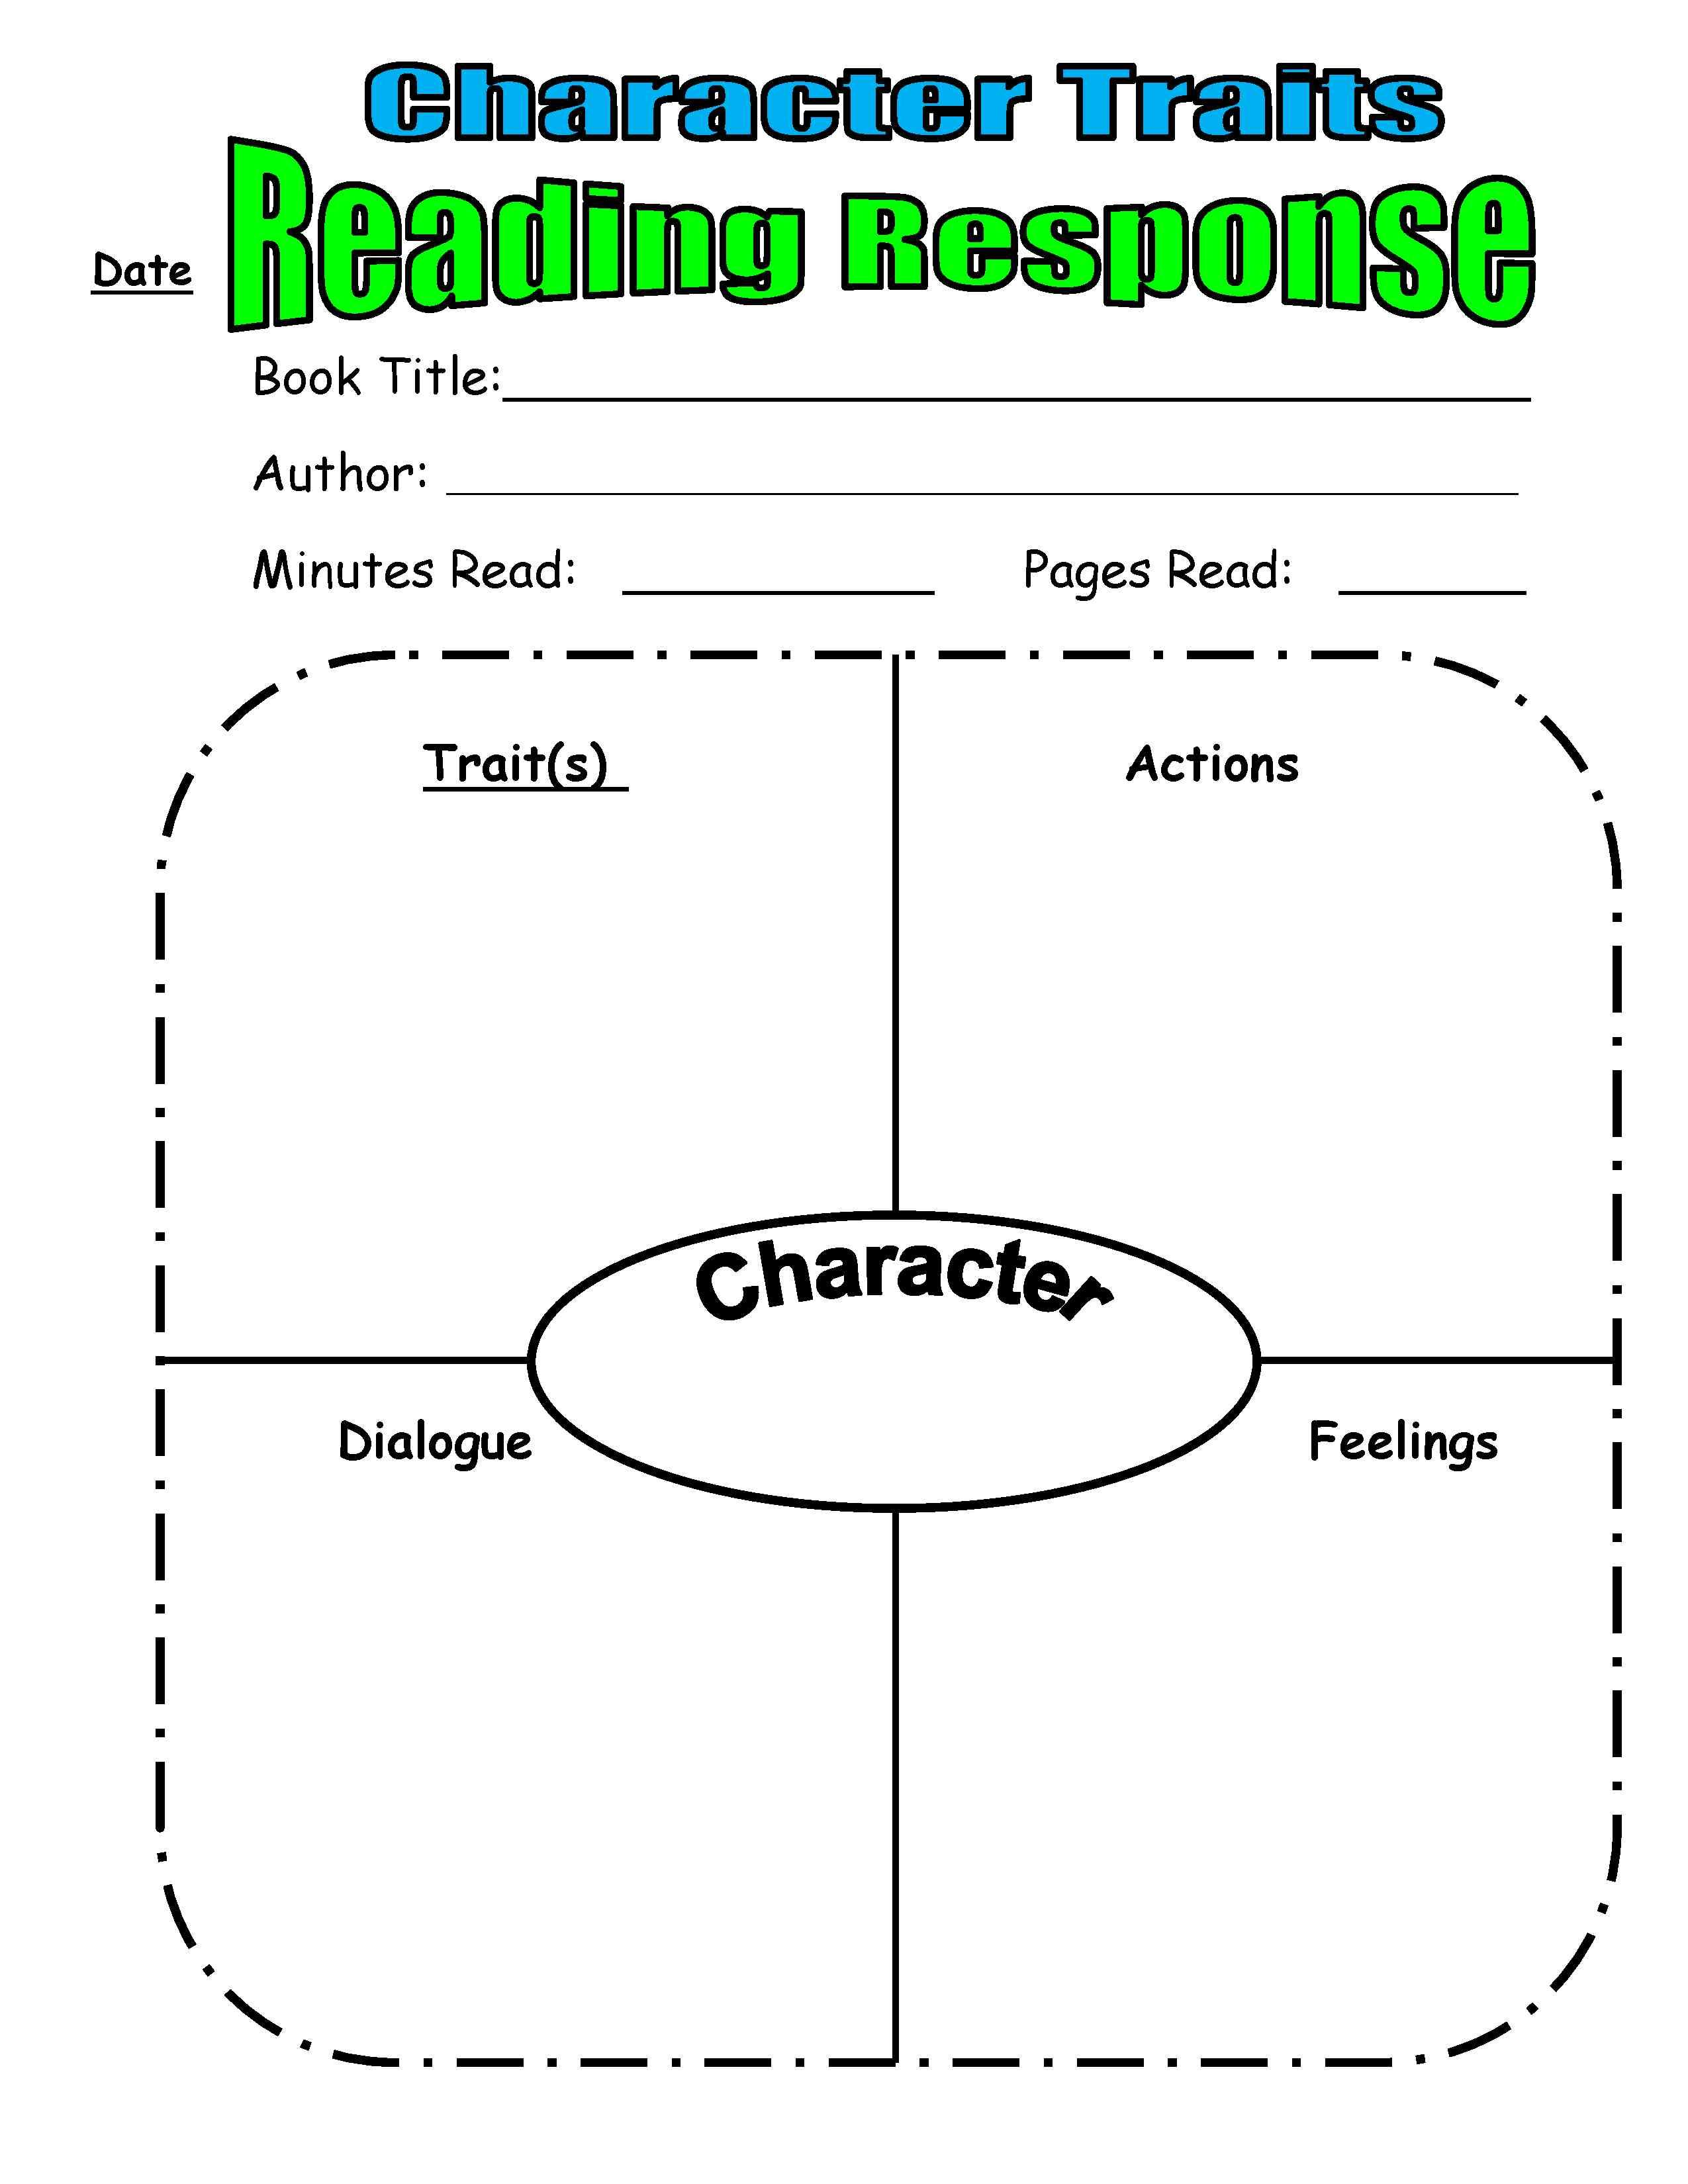 Worksheets Character Traits Worksheets character trait reading response from scholastic top teaching for teaching